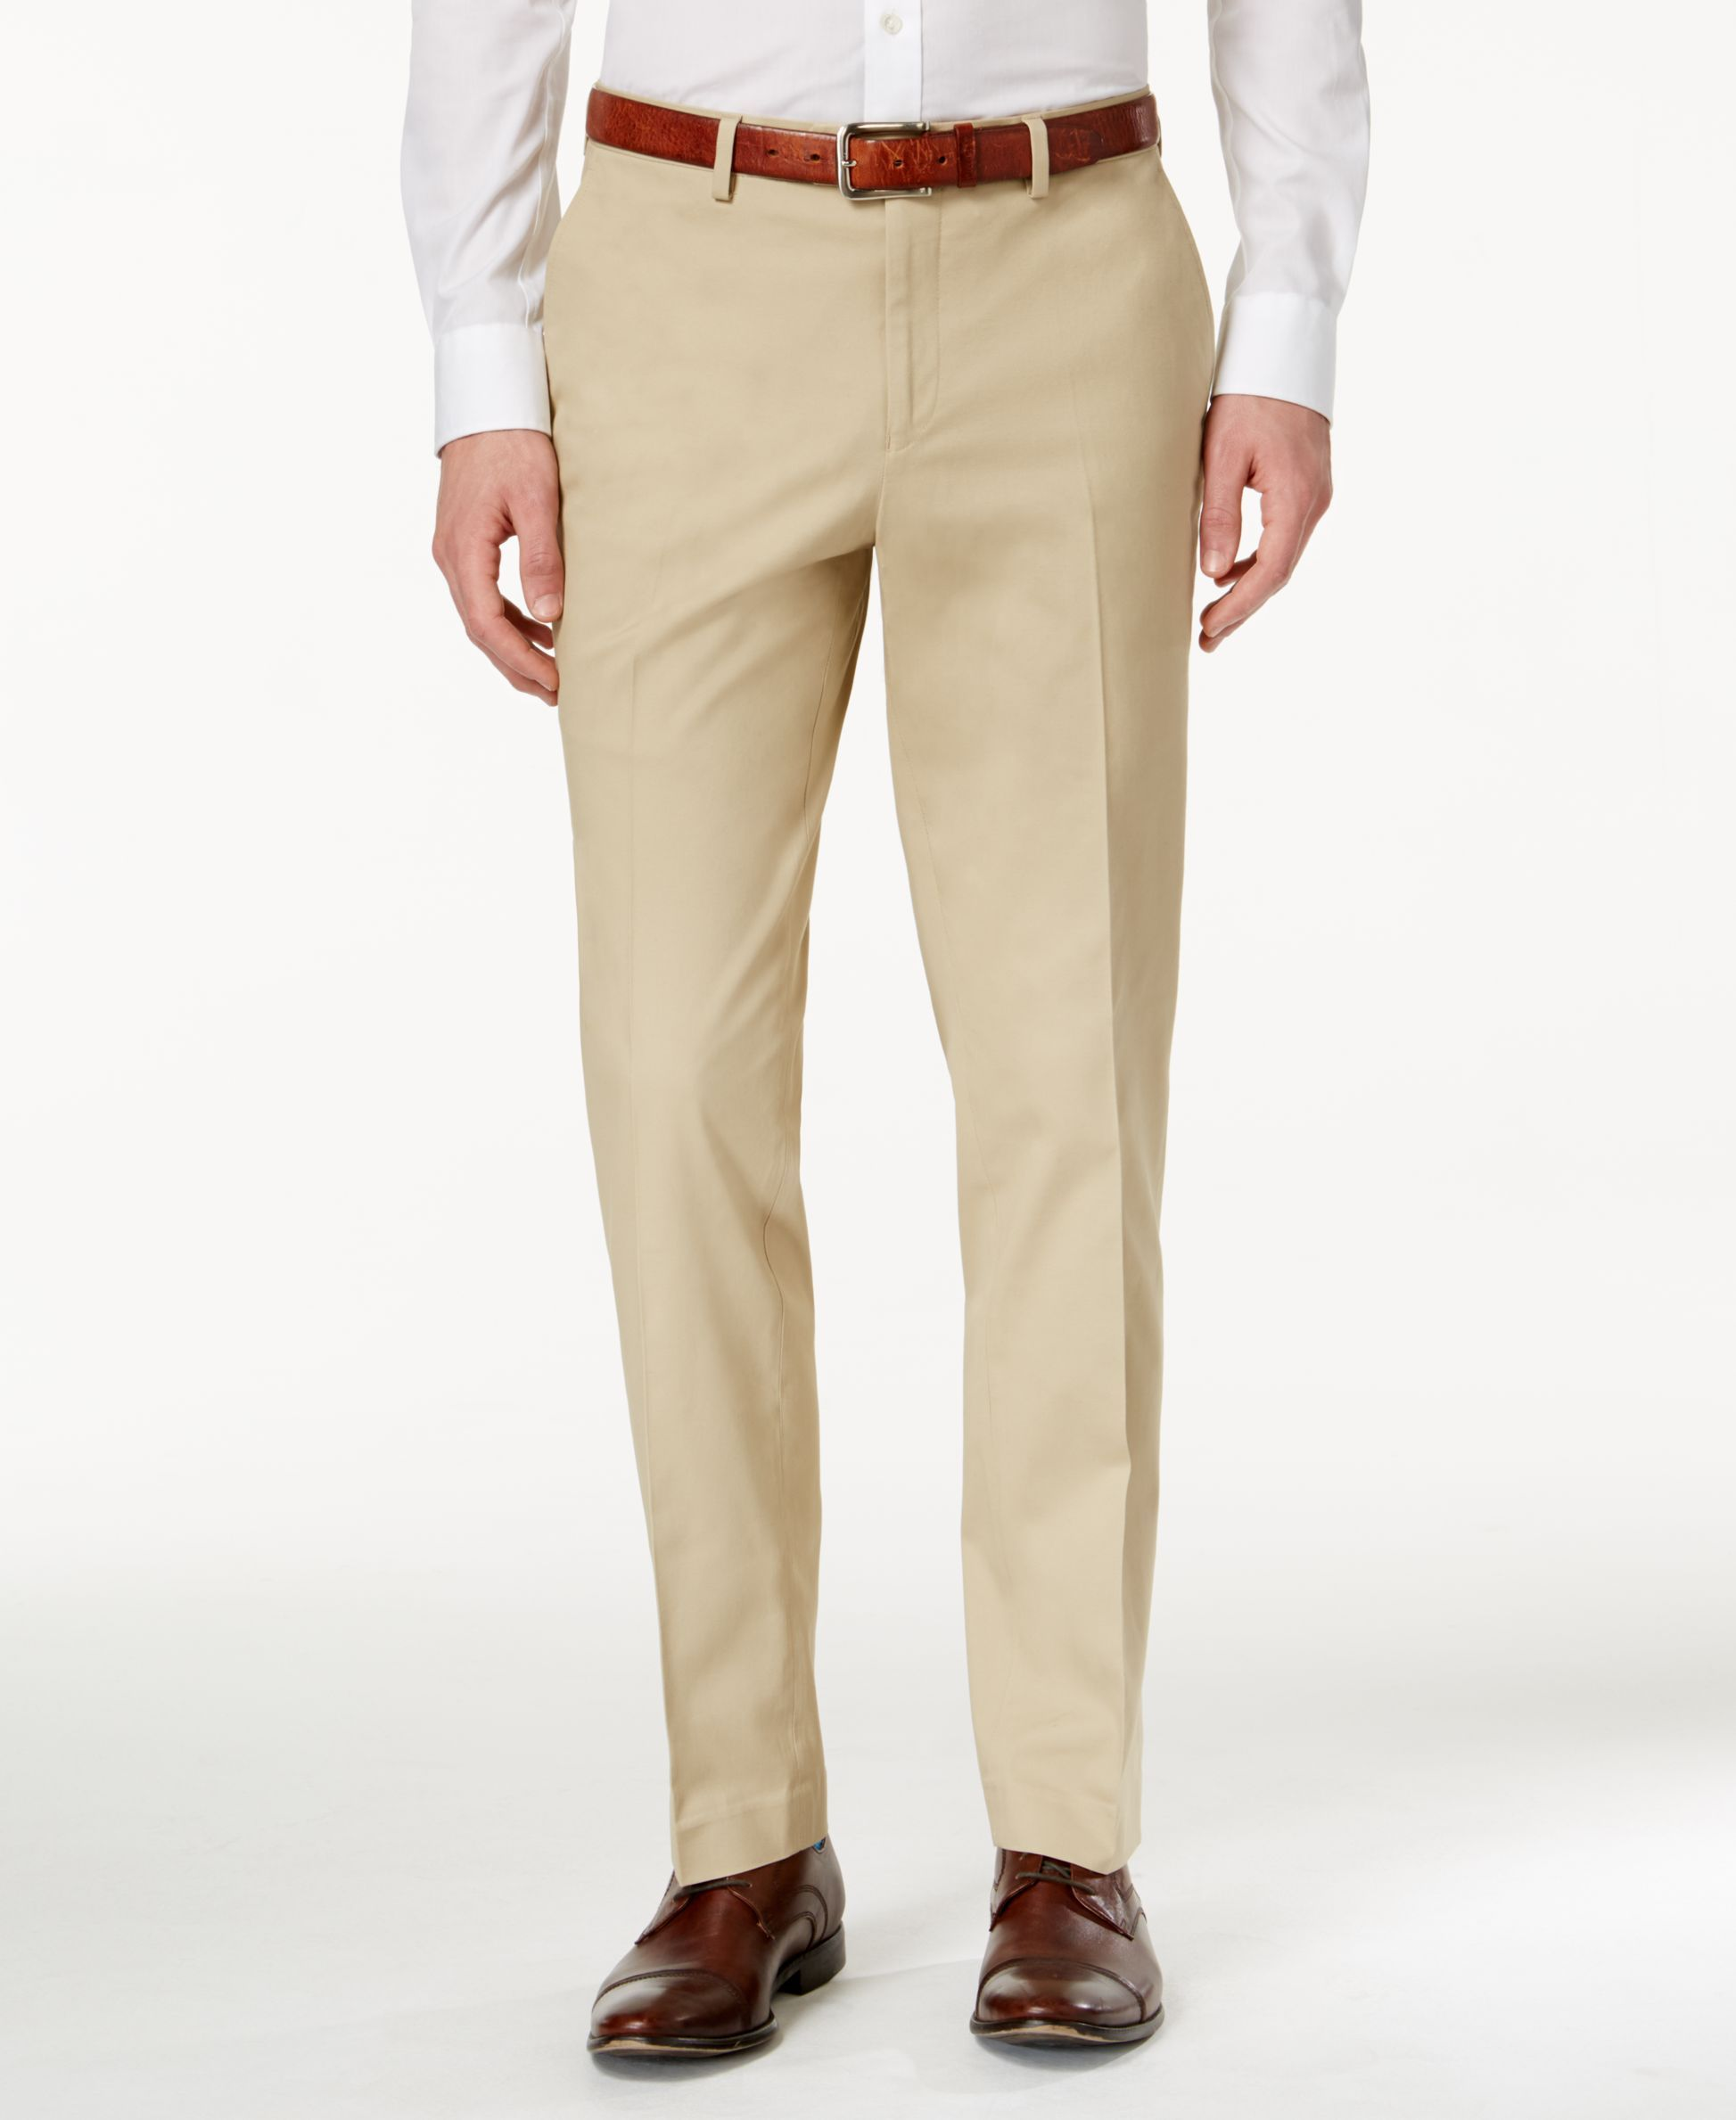 Bar Iii Men's Slim-Fit Tan Stretch Pants, Only at Macy's ...